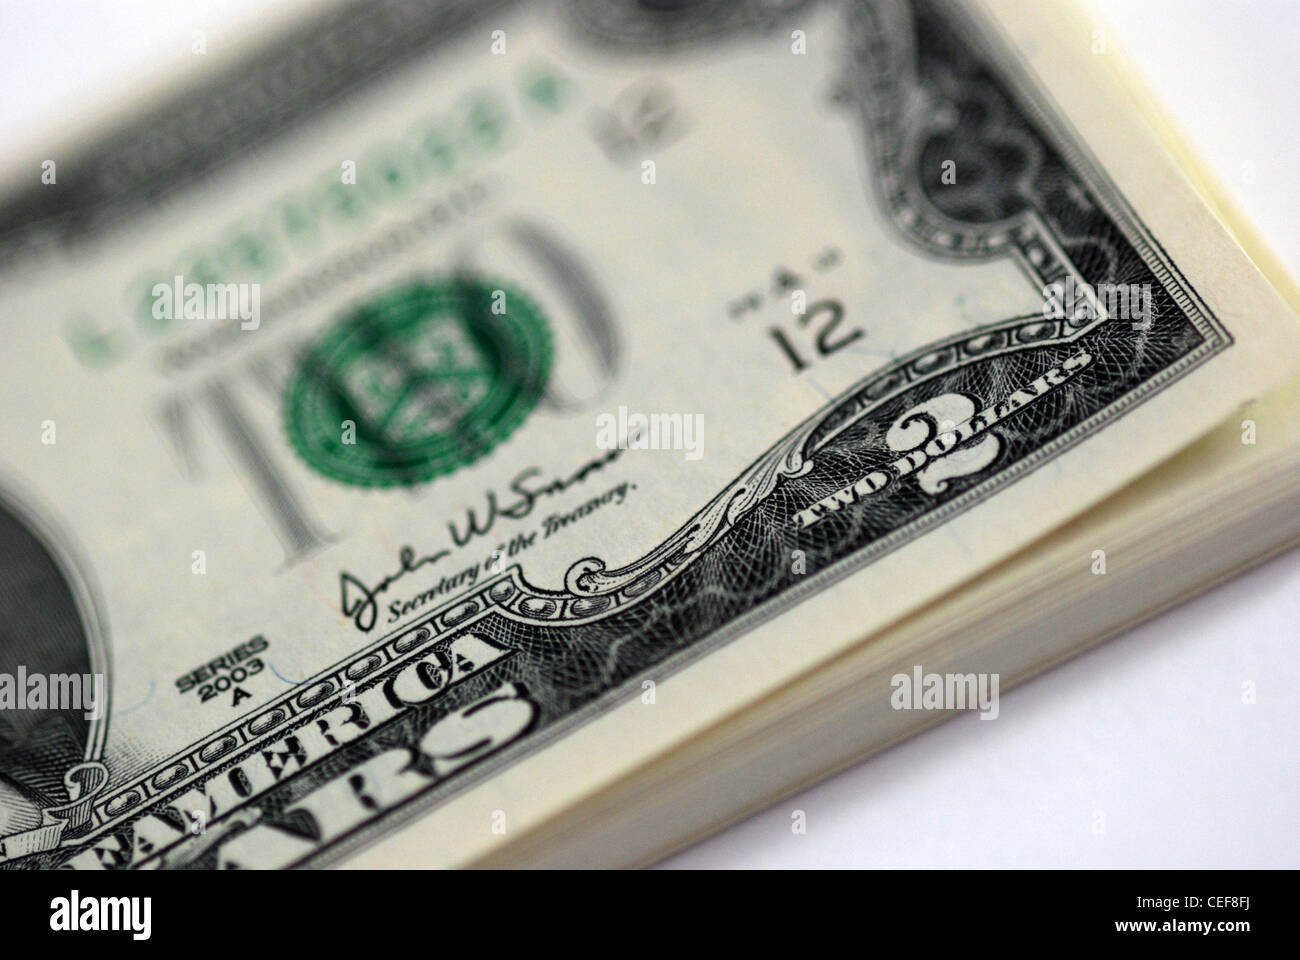 A close up of a stack of brand new usd two dollar bills.  On white background, shallow depth of field. - Stock Image